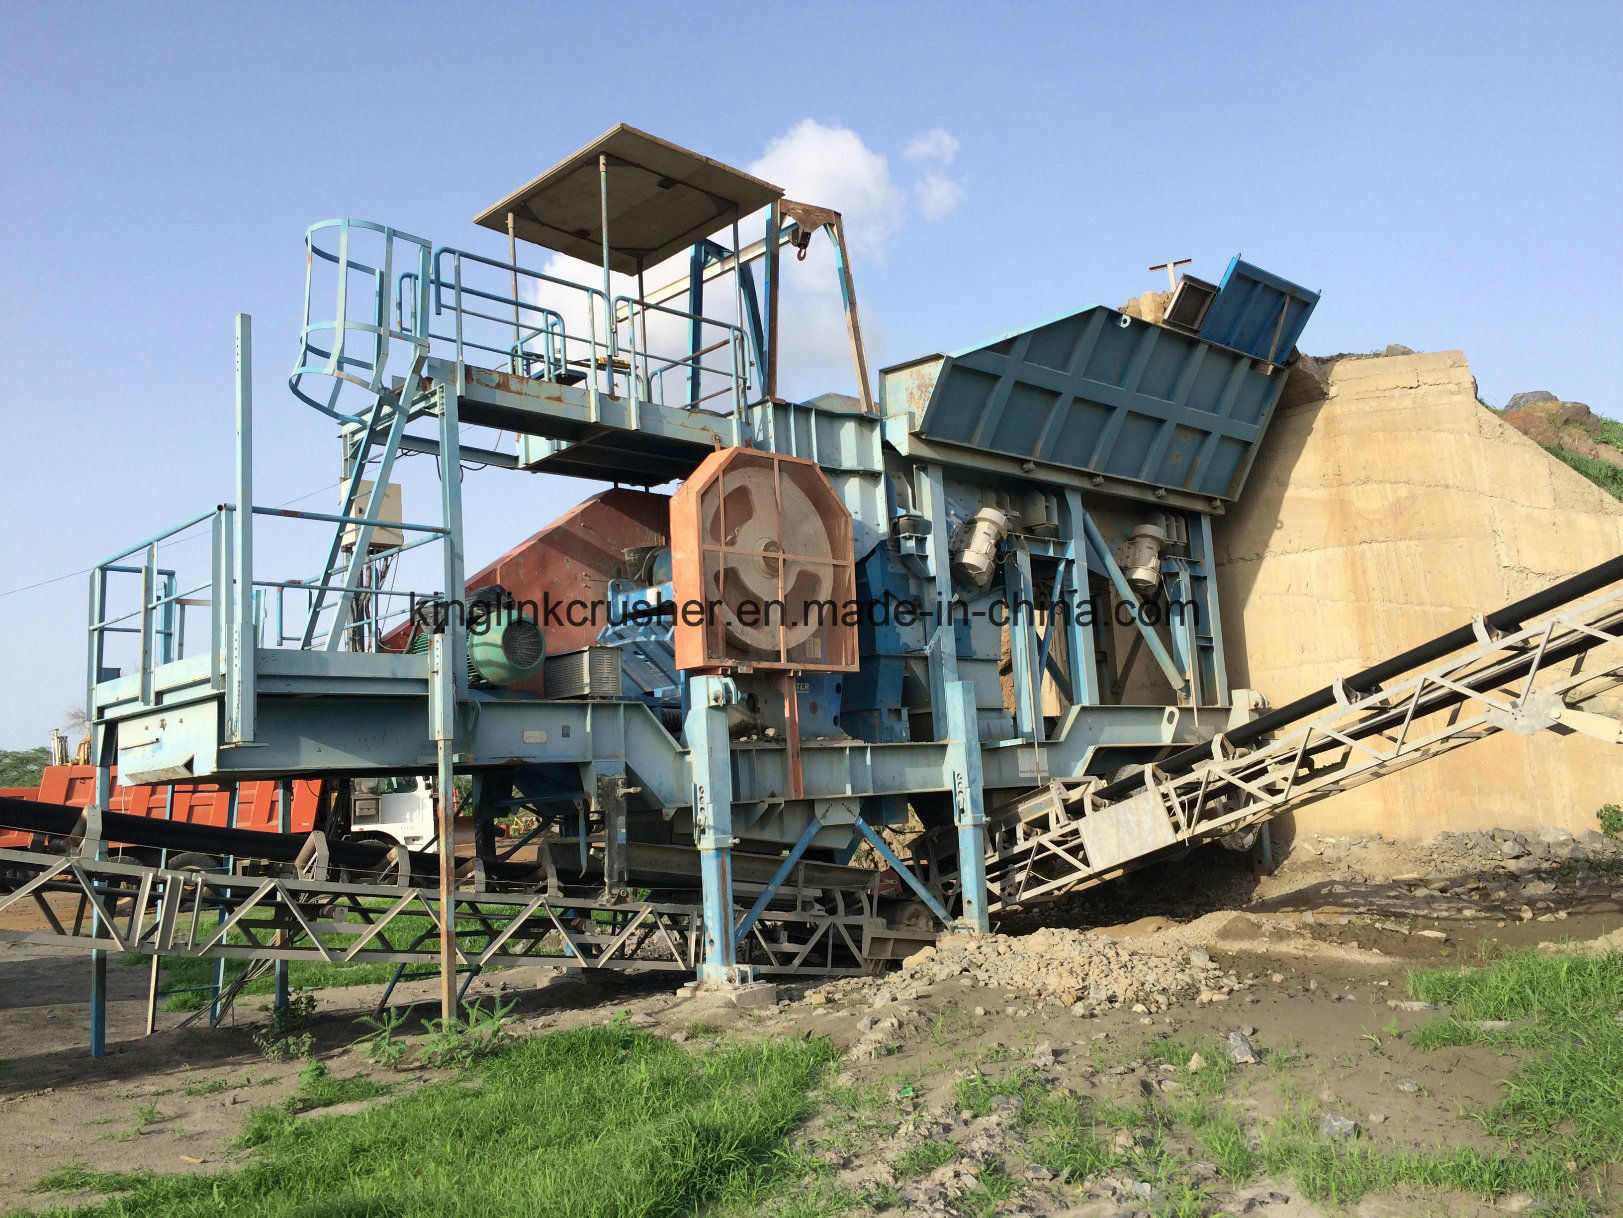 250tph Sandvik Granite Stone Crushing Plant for Producing Aggregates and Sand